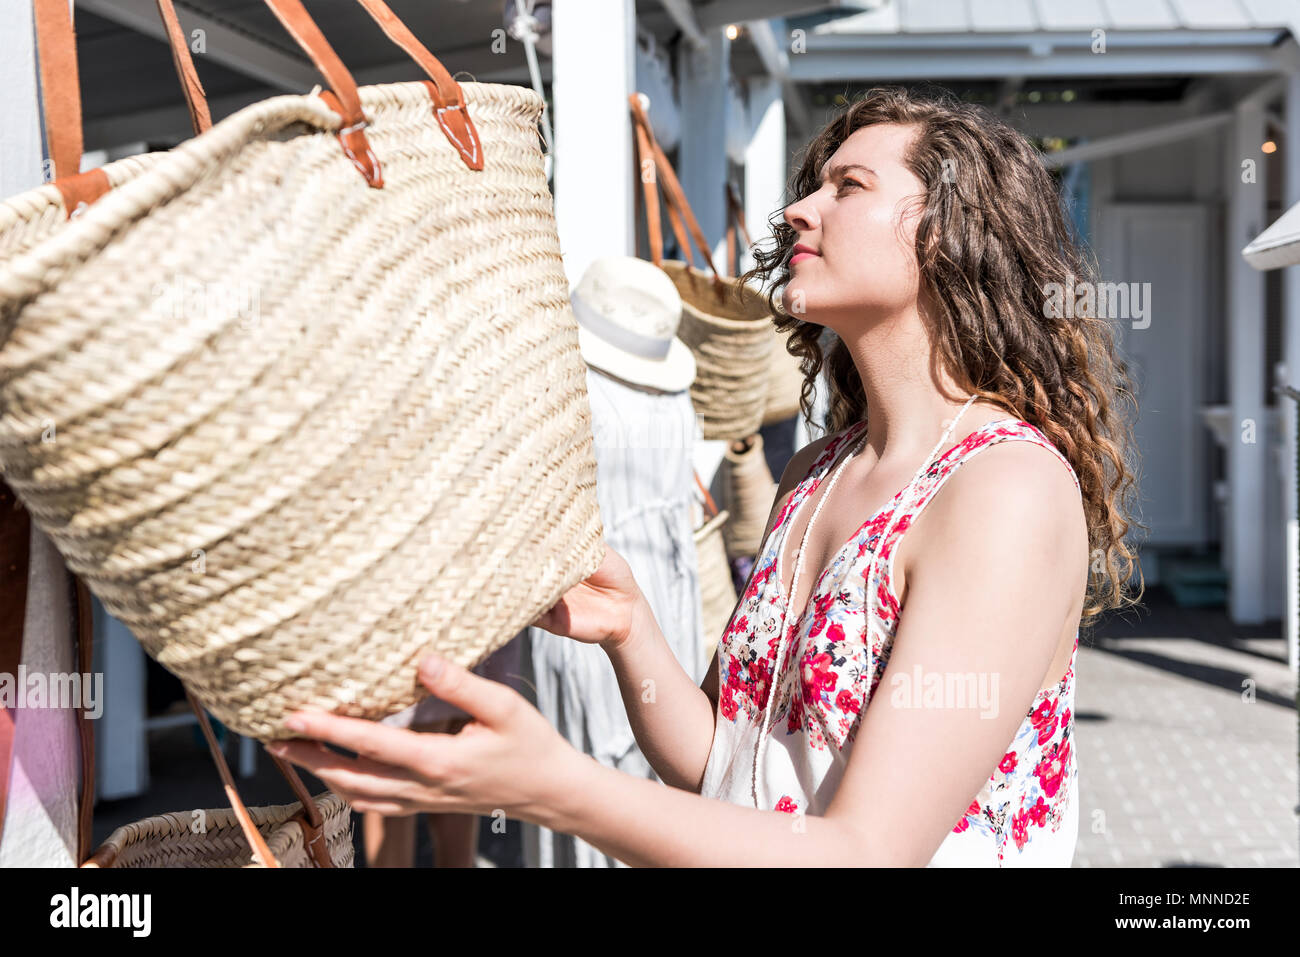 Closeup of young woman shopping for straw beach bag in outdoor market shop store in European, Greece, Italy, Mediterranean town, village in colorful s - Stock Image